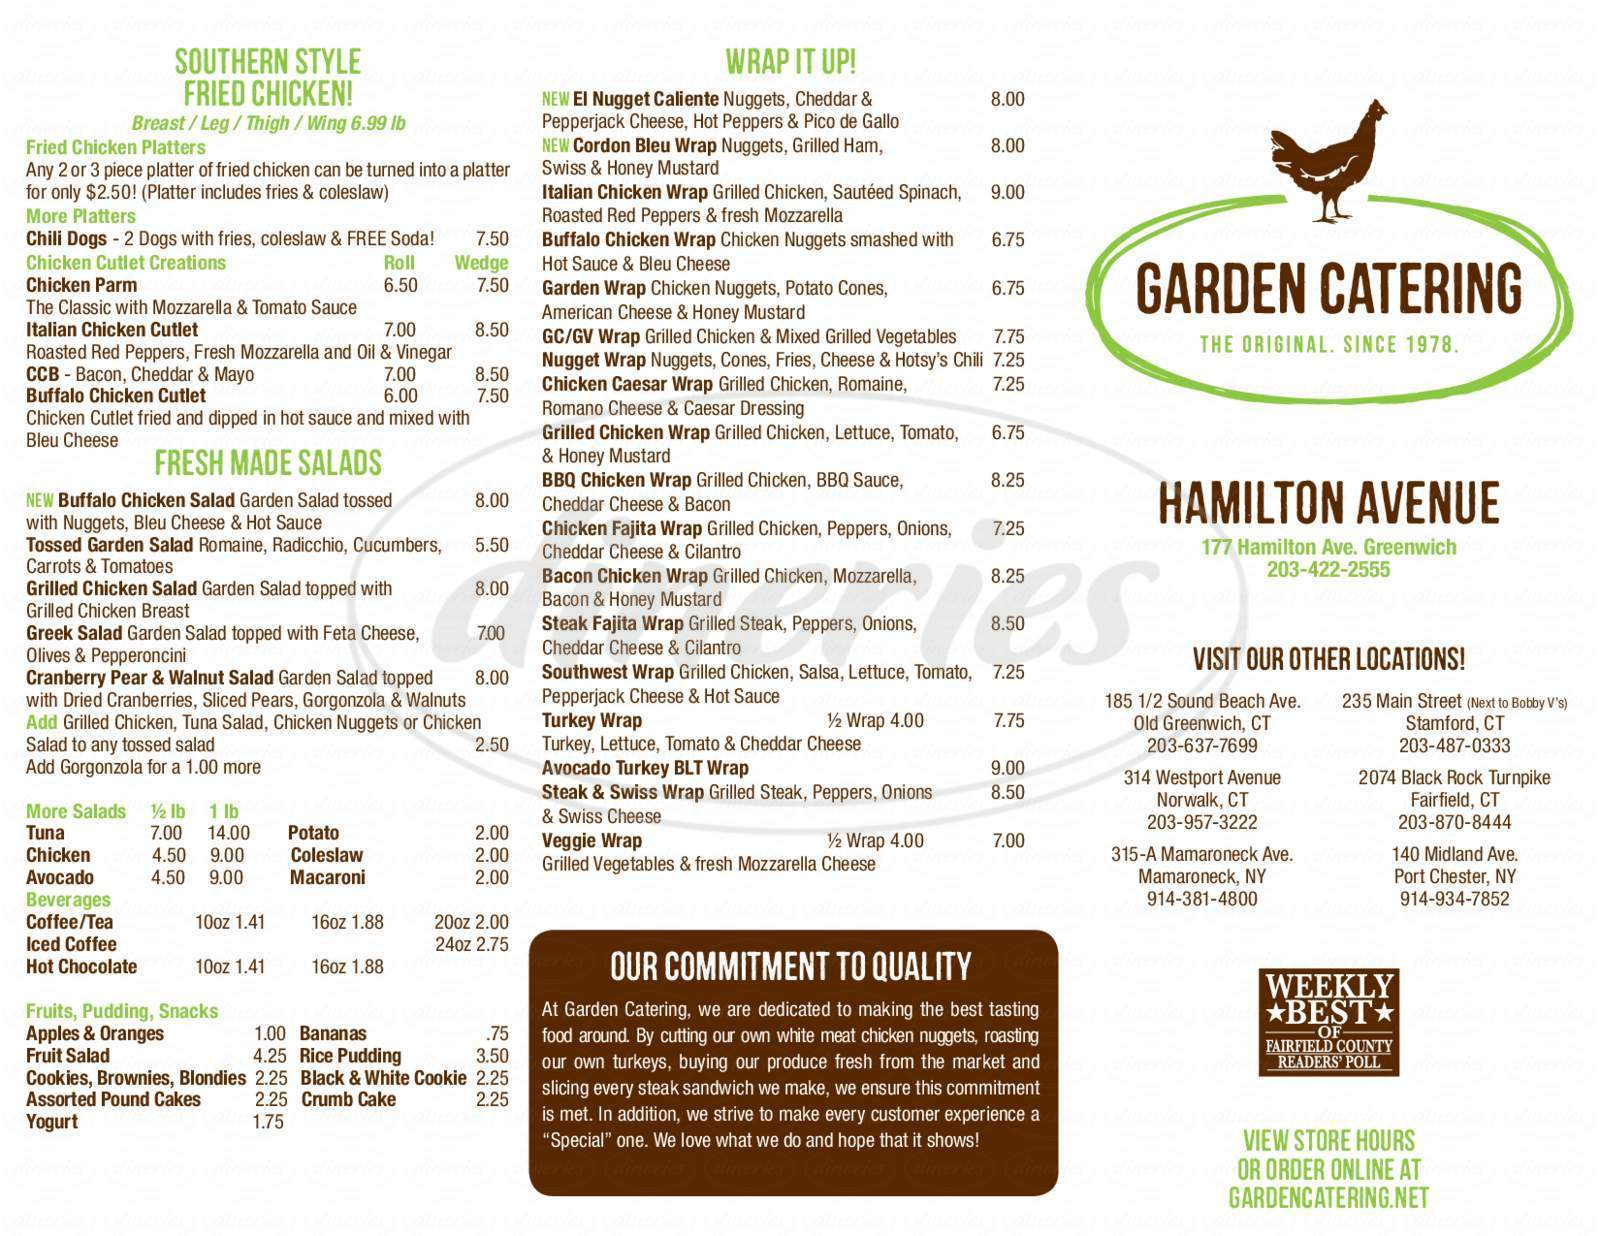 menu for Garden Catering